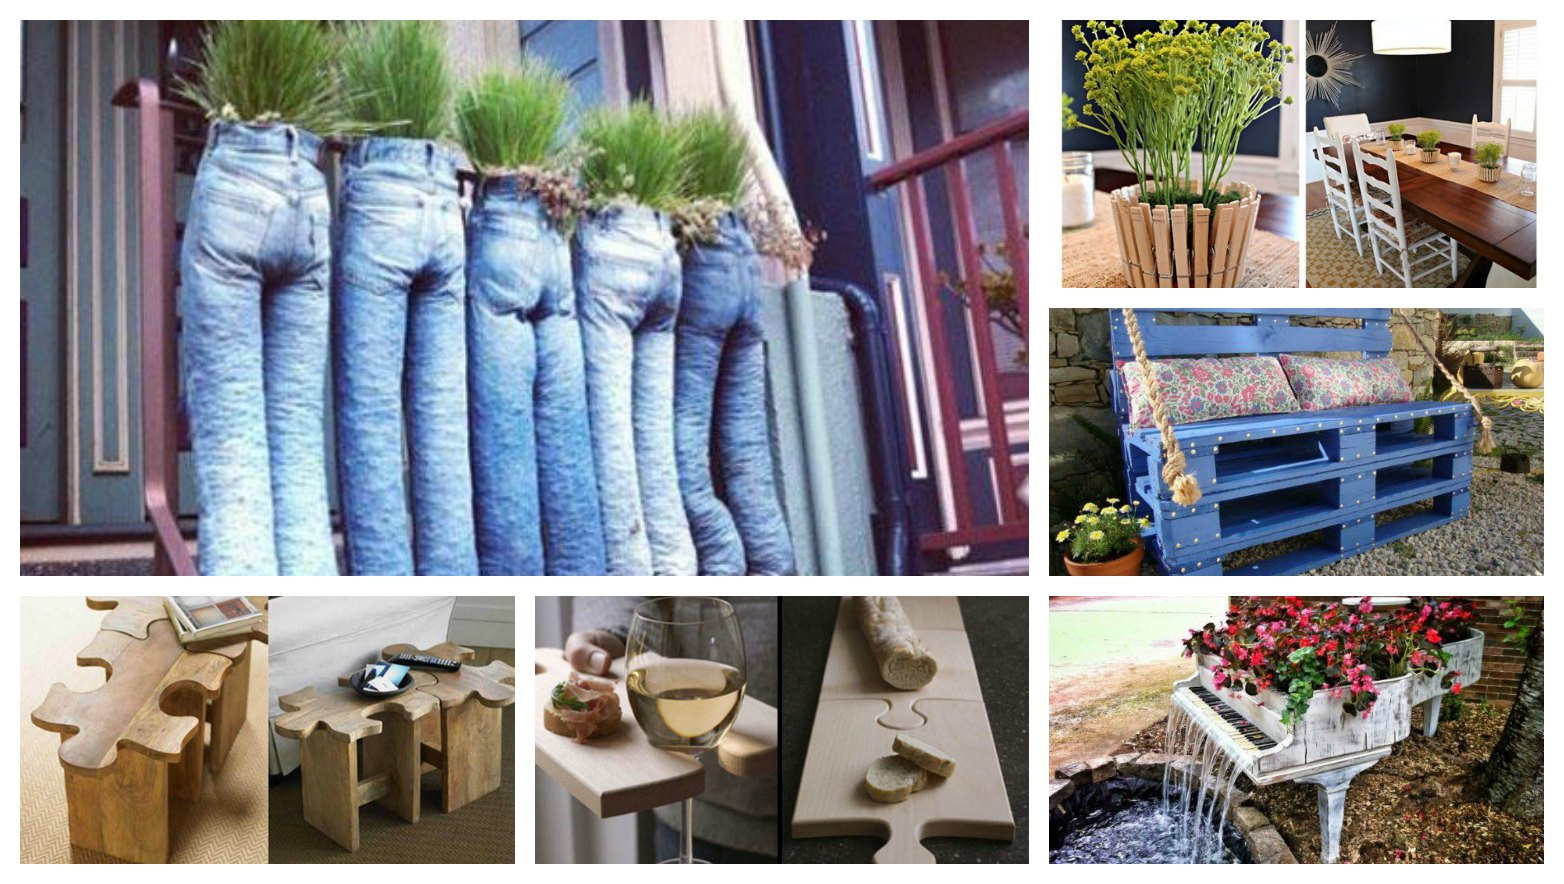 Diy Home Ideas  43 DIY Interesting And Useful Ideas For Your Home